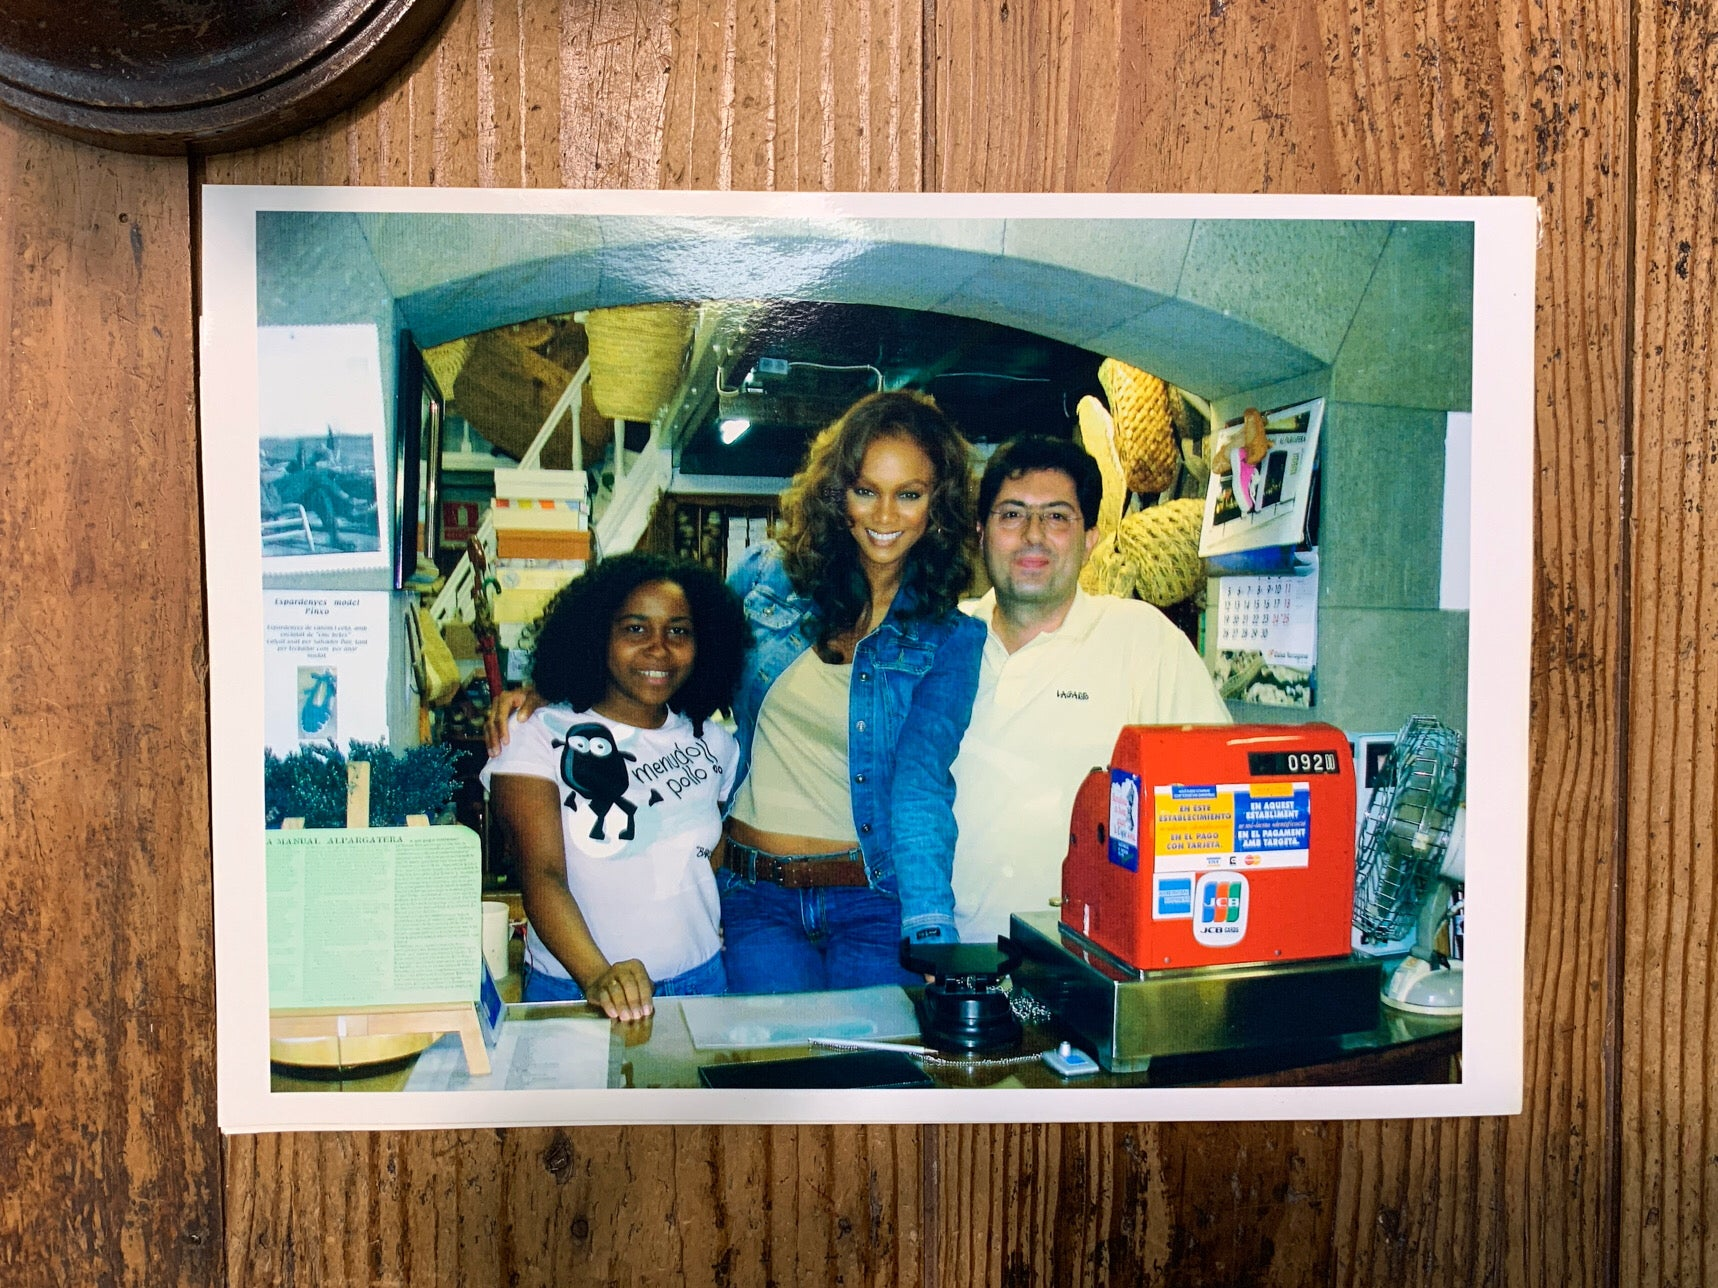 Tyra Banks visiting La Manual Alpargatera  | La Manual Alpargatera